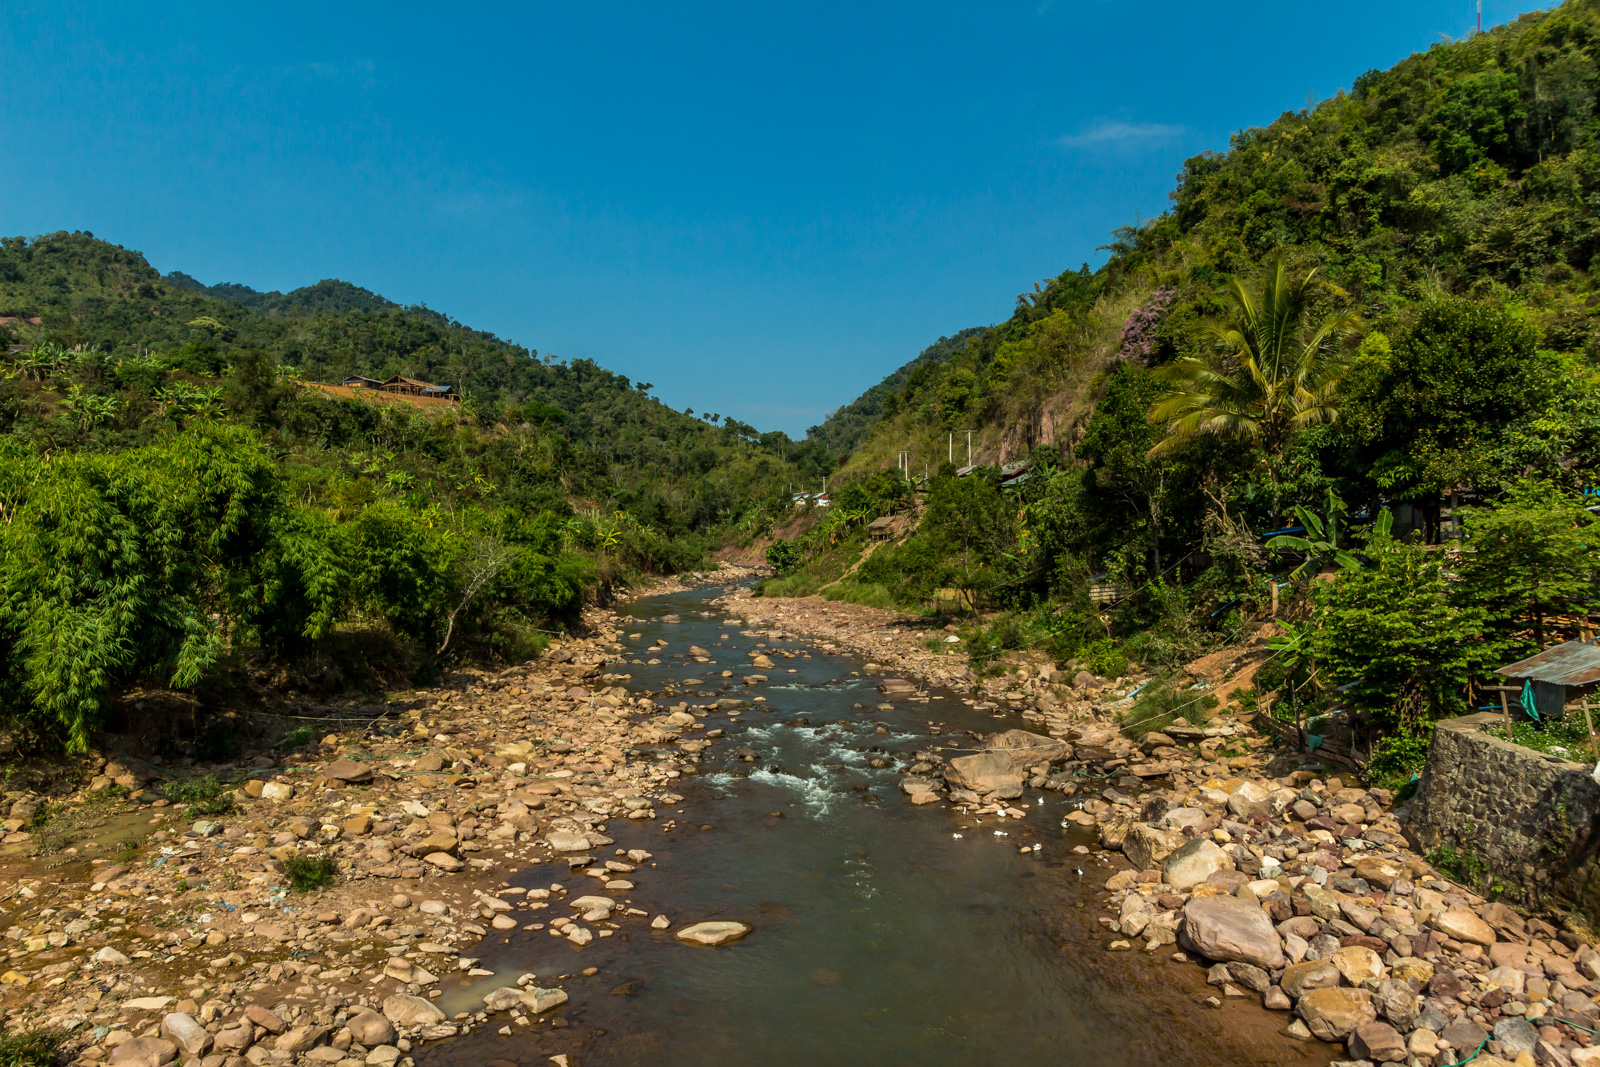 The rivers are rocky because Laos has built so many dams.